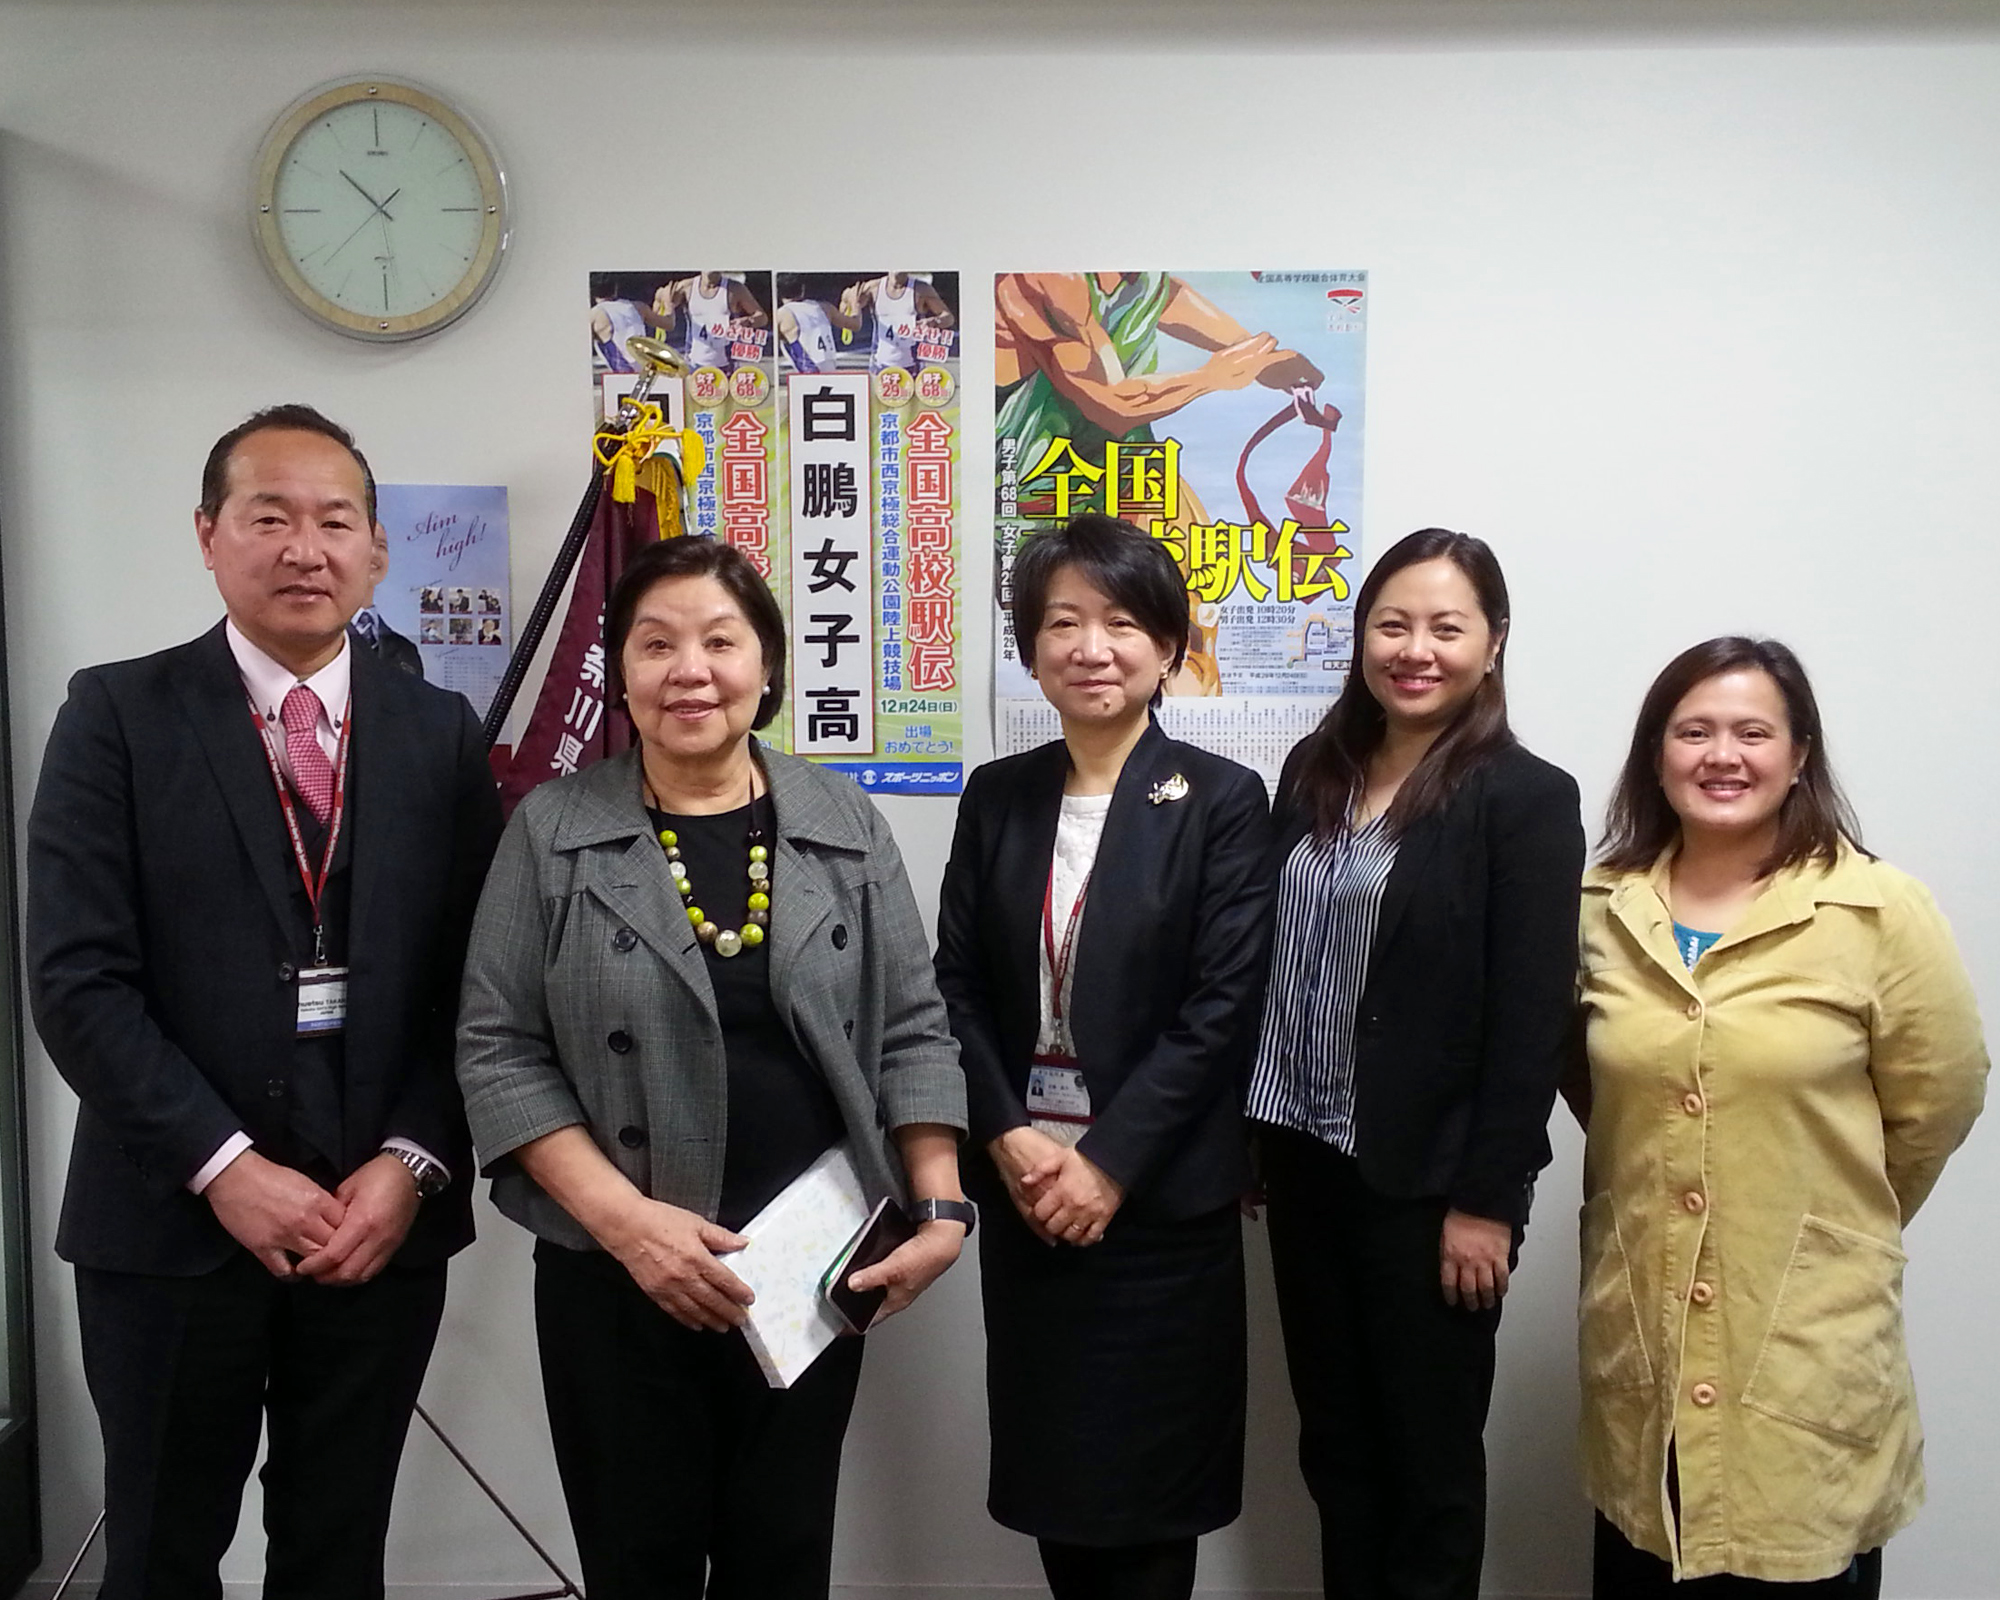 MC partners with schools in Japan